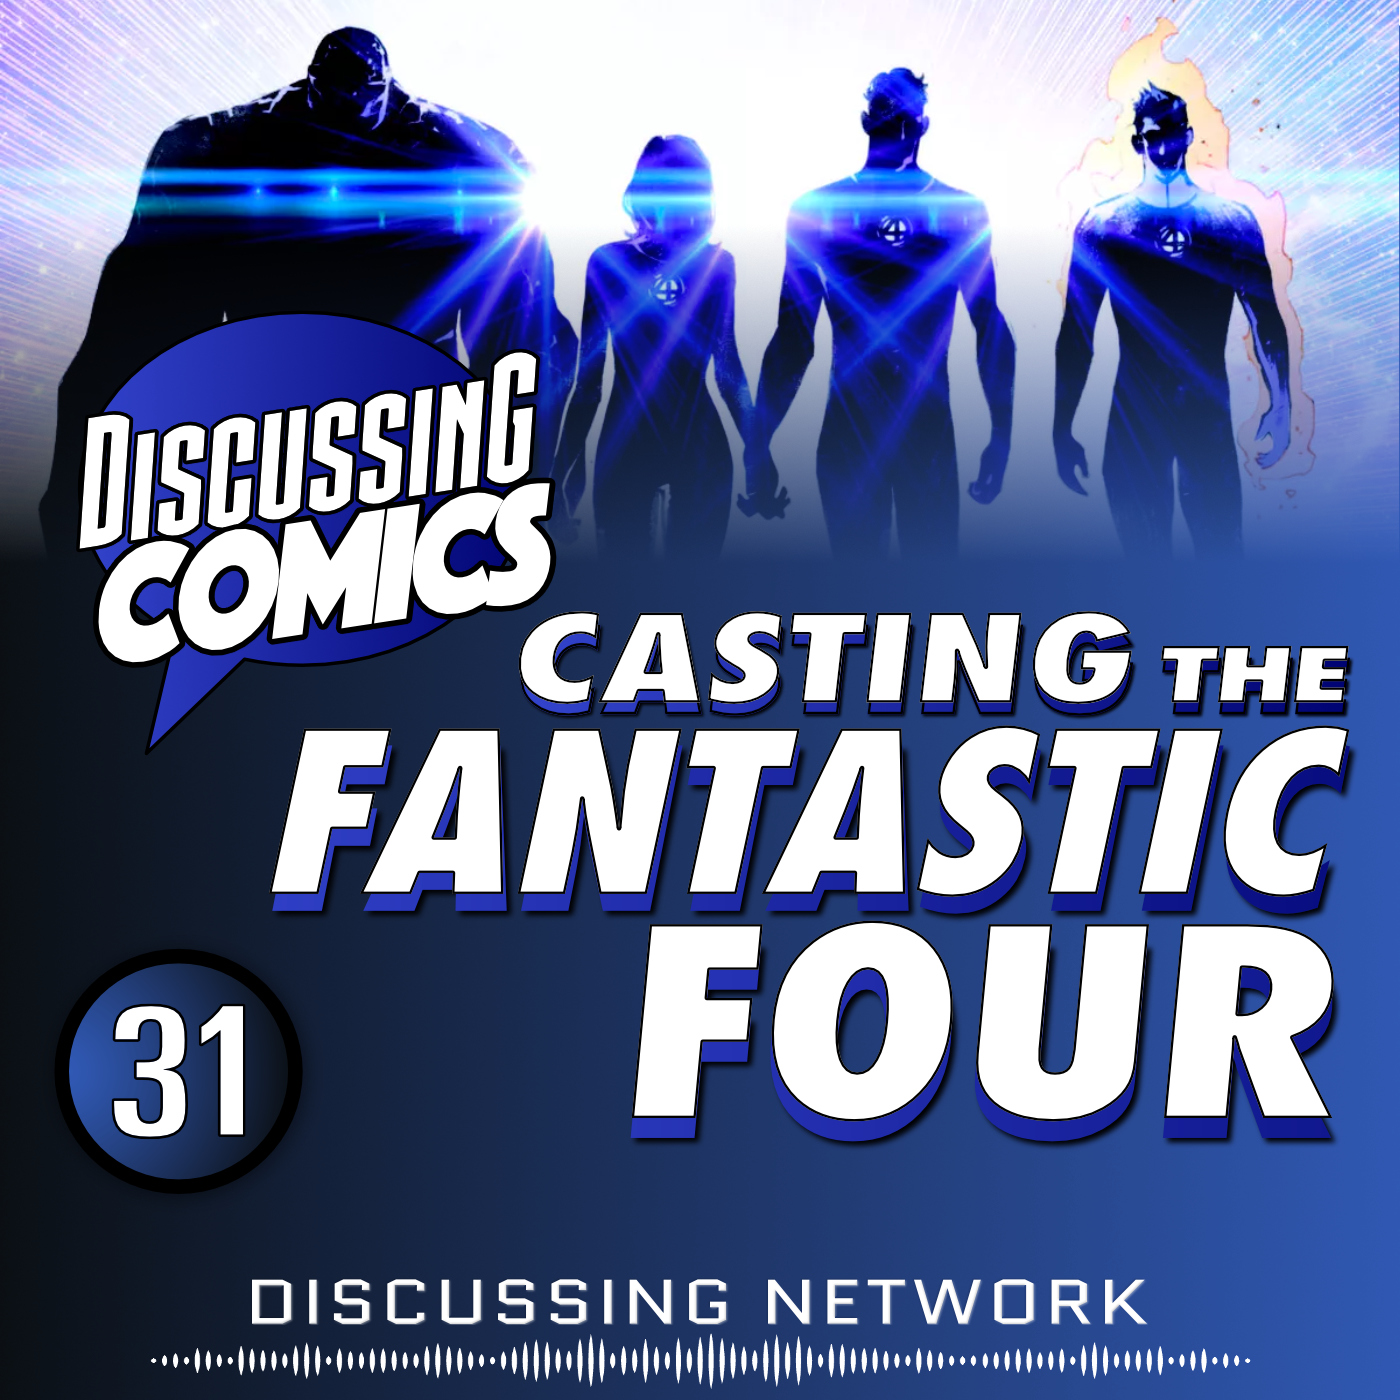 Casting the Fantastic Four for the MCU